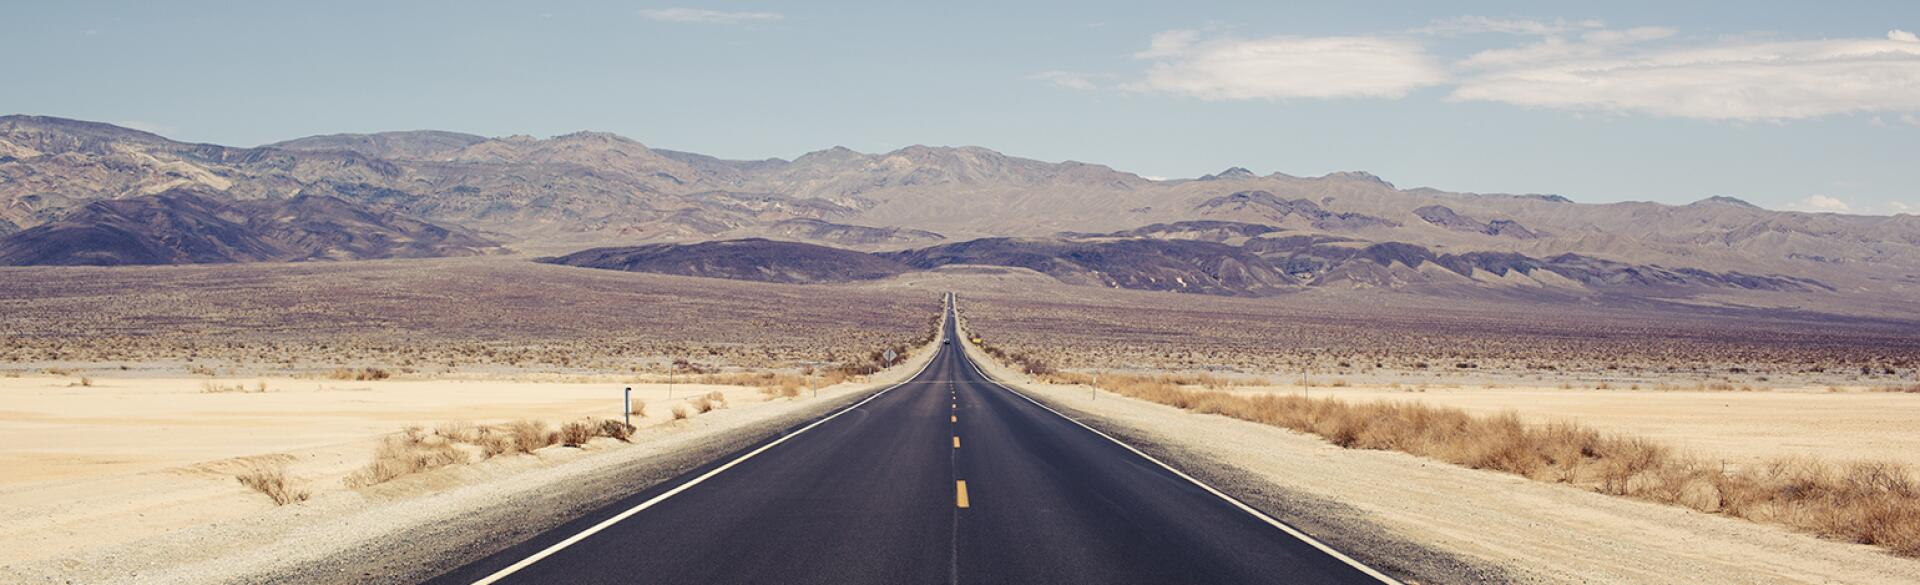 Empty road in the desert representing loneliness.